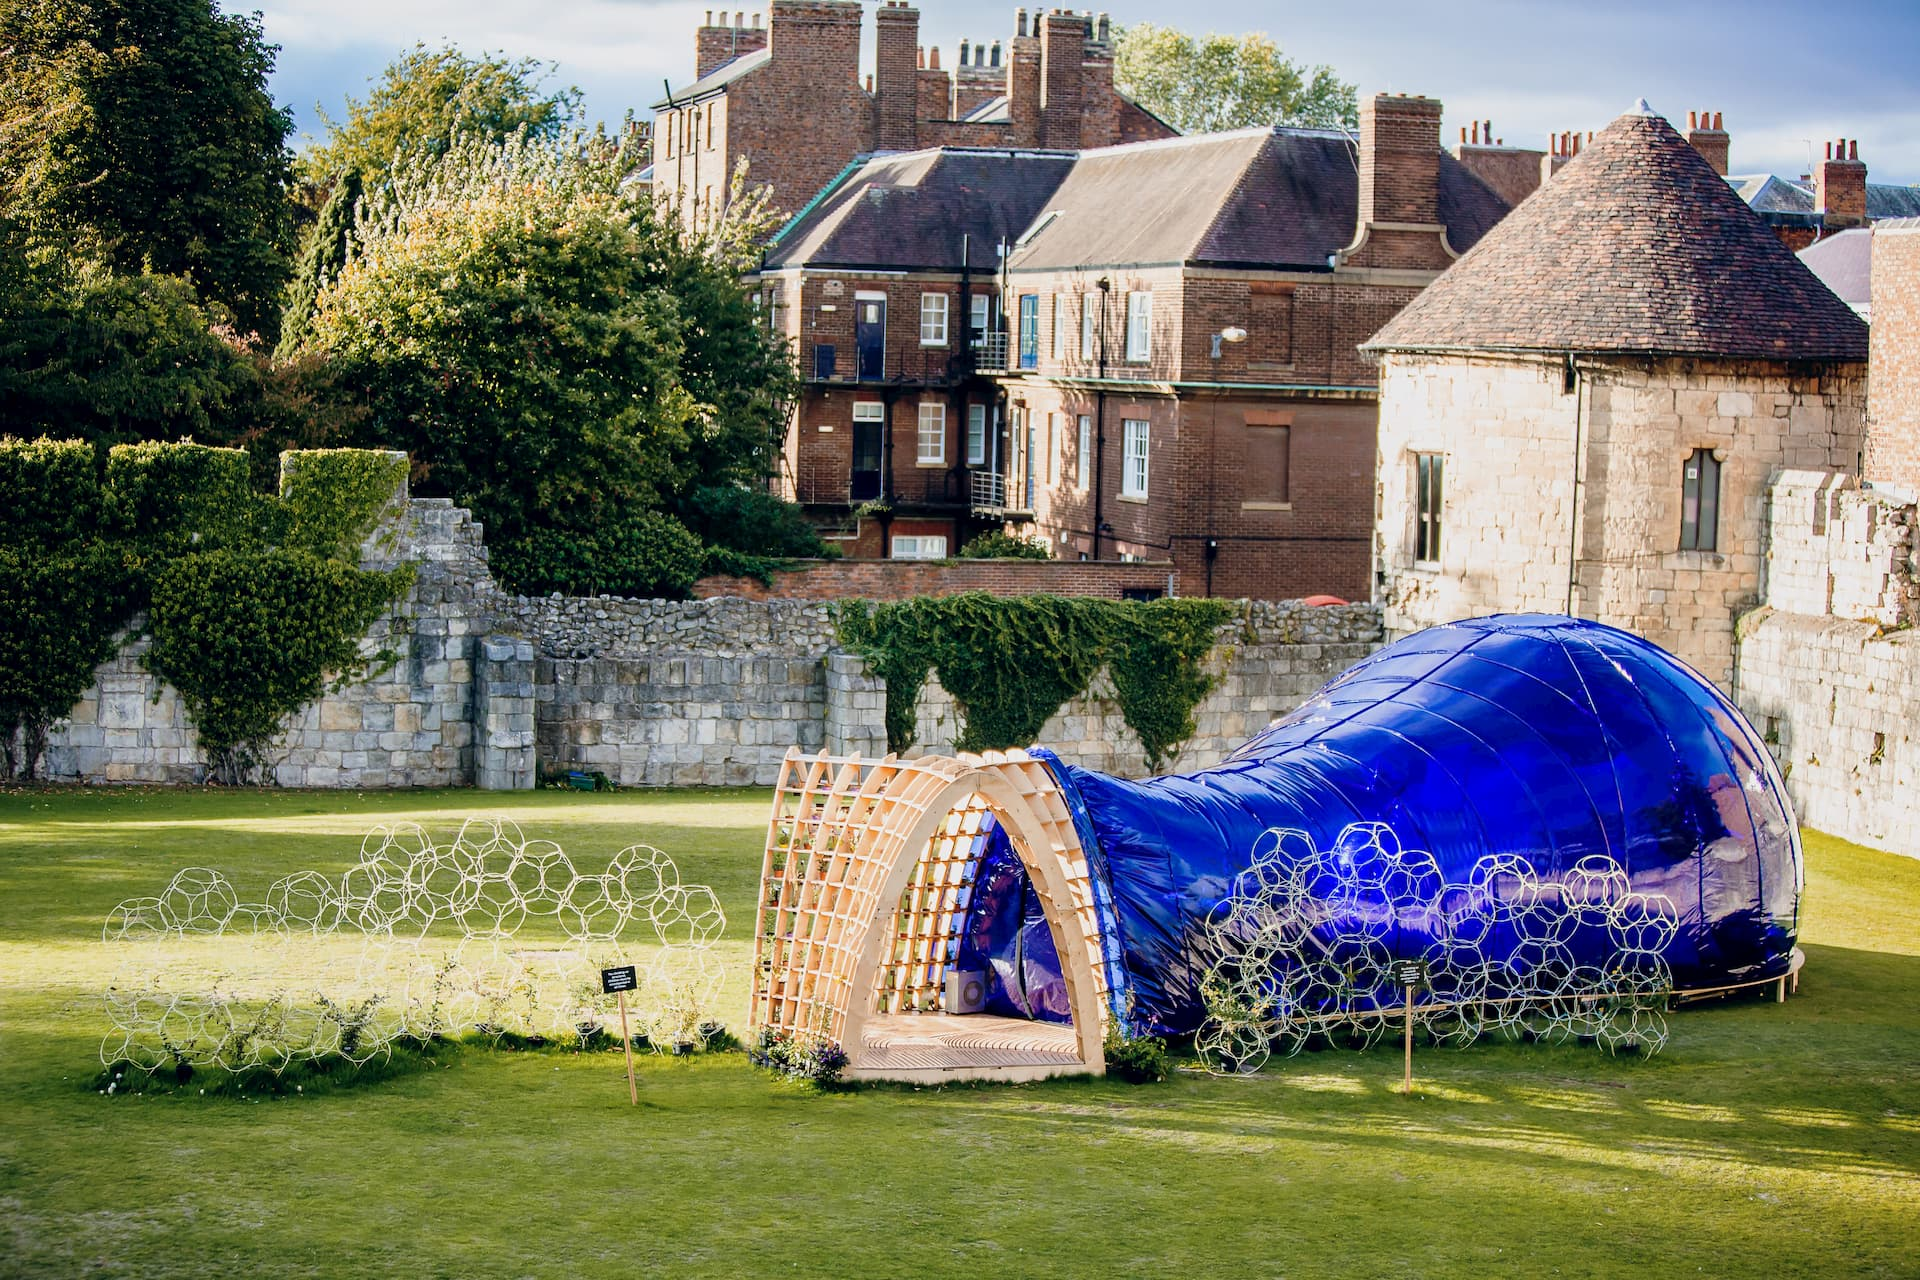 The Pollinarium in the Artist Gardens at York Art Gallery © York Mediale